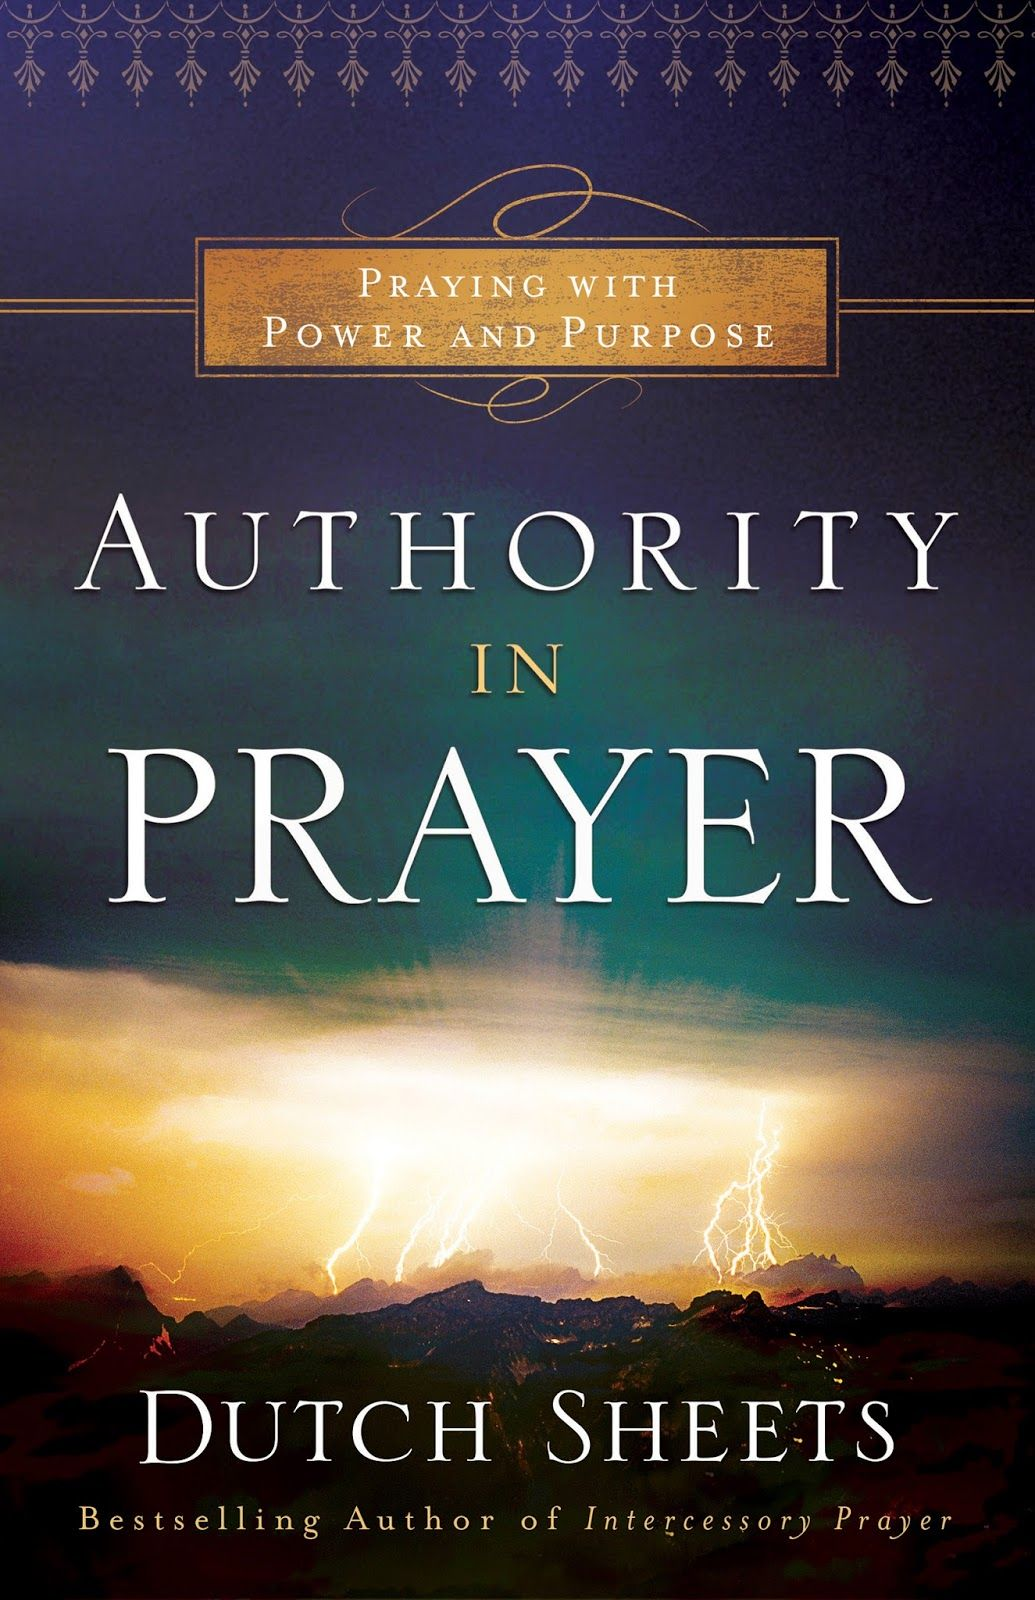 Authority in Prayer by Dutch Sheets my review